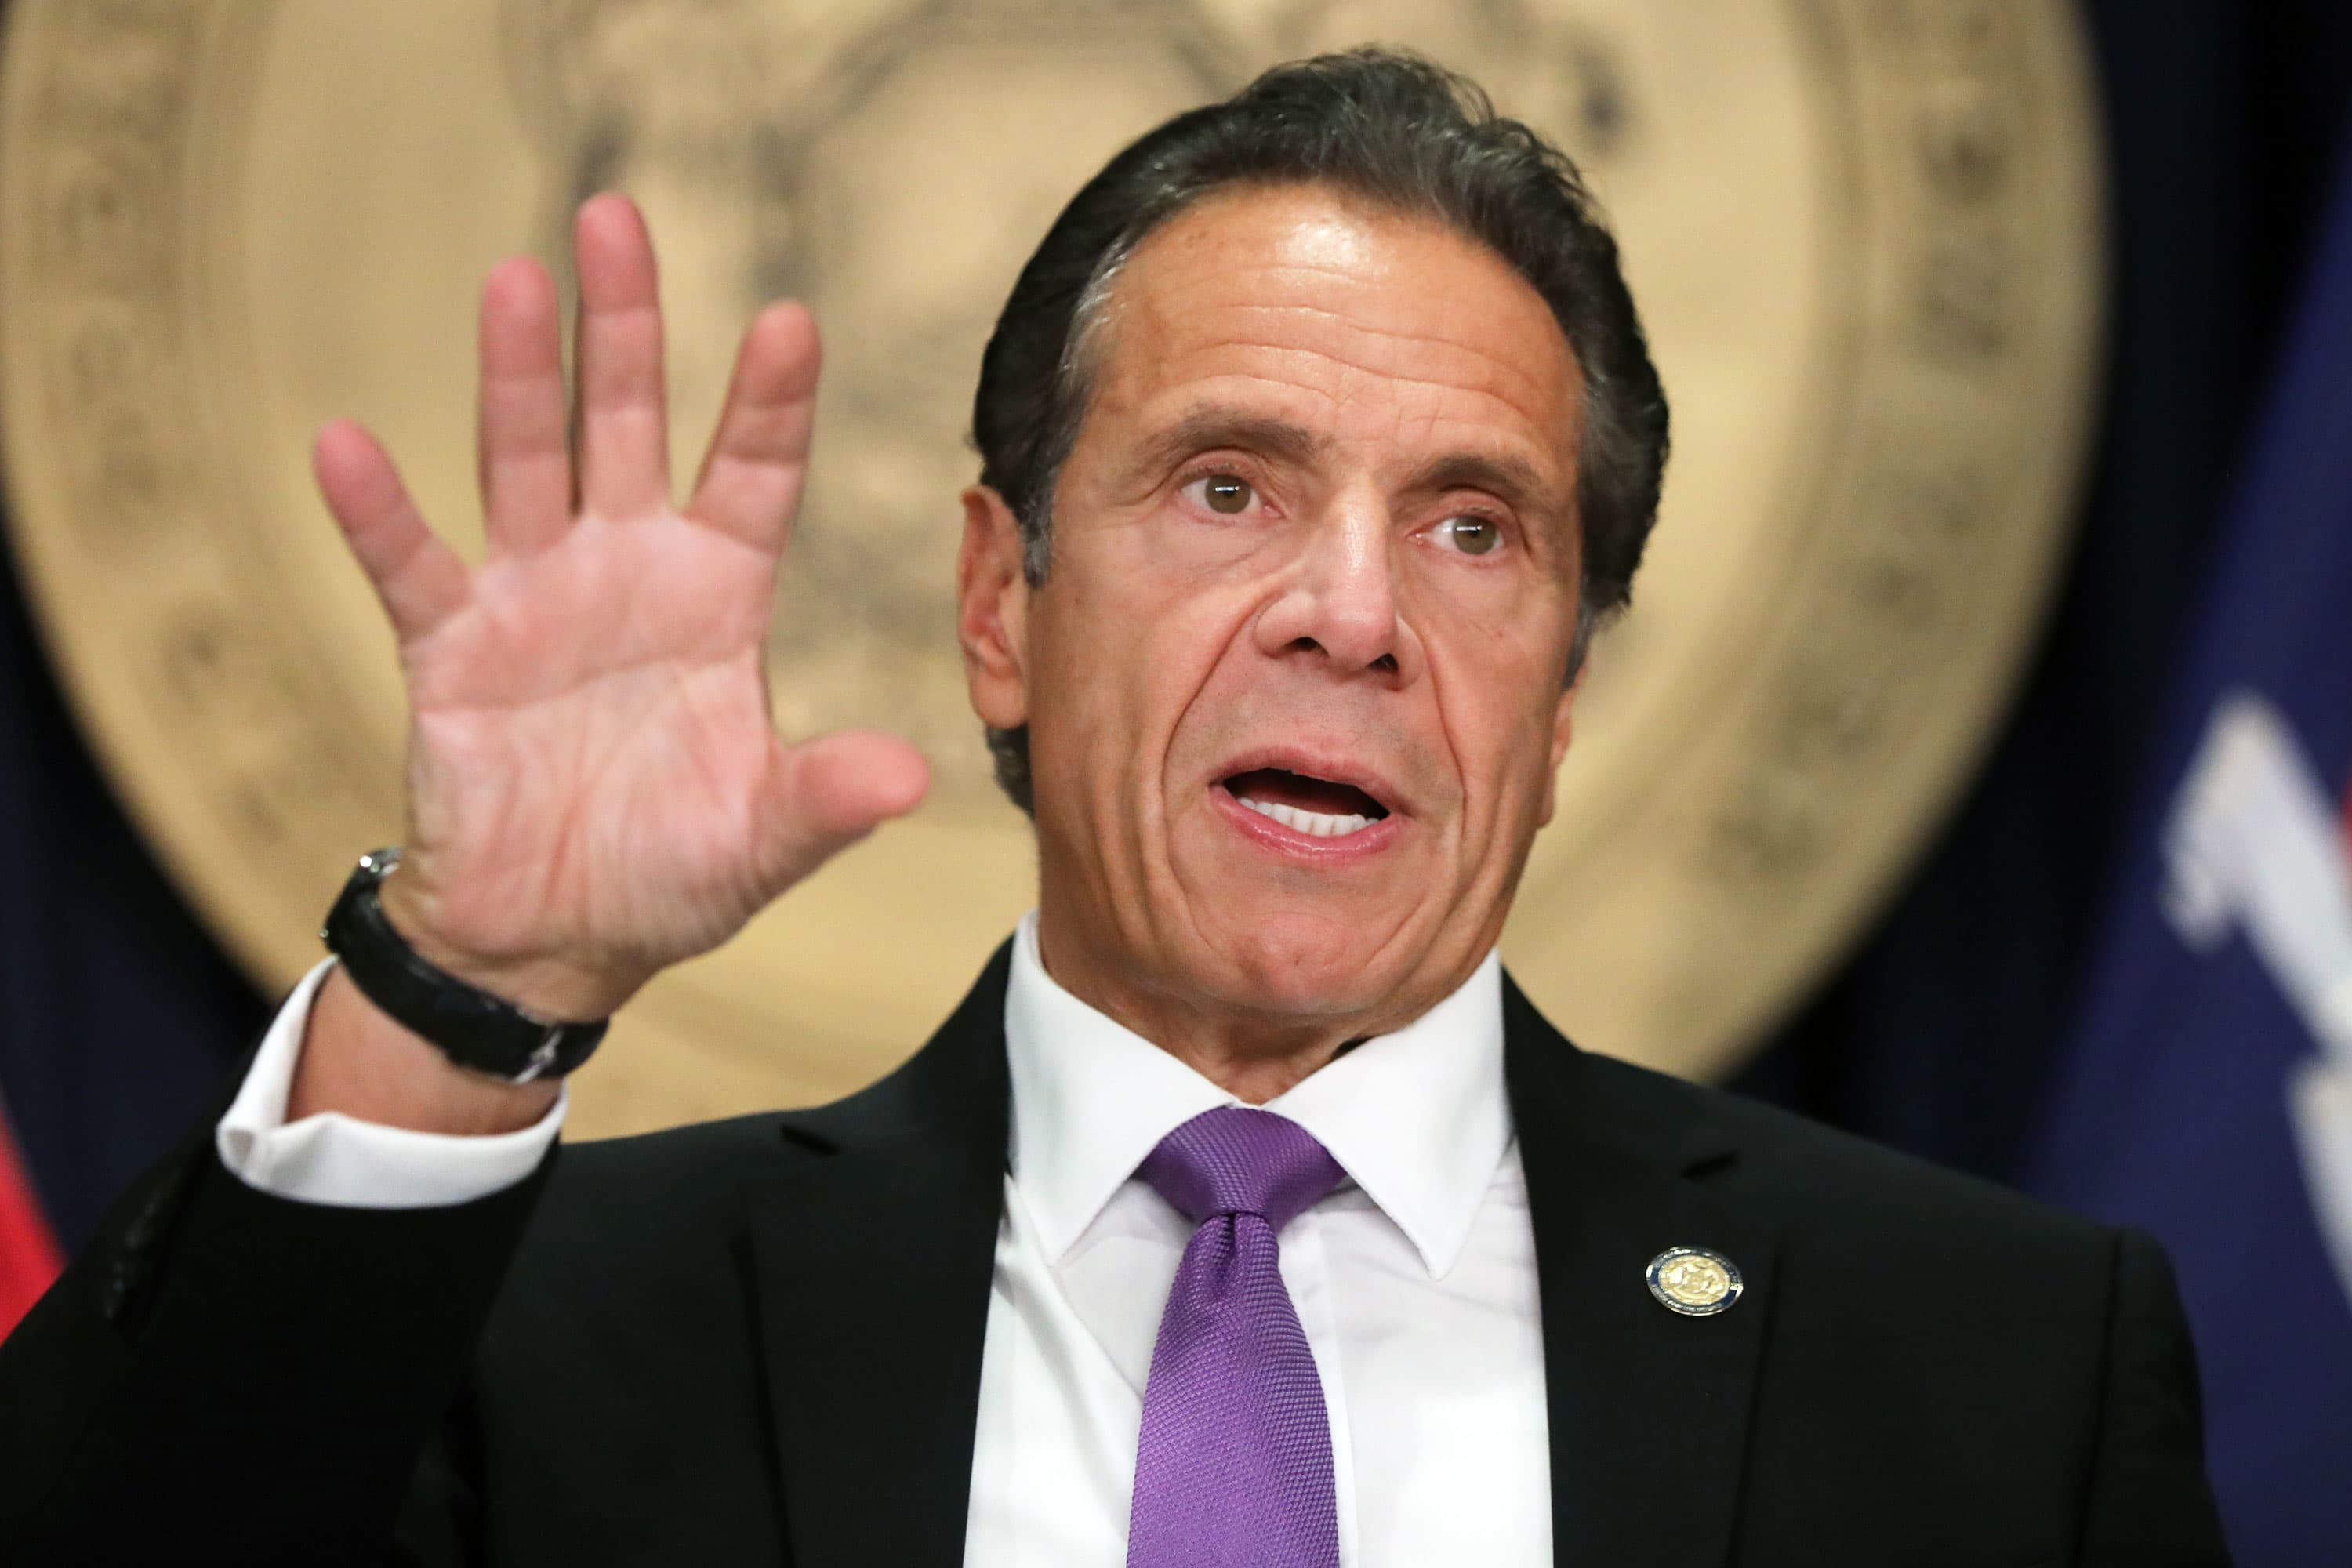 New York attorney general investigating whether clinic fraudulently obtained Covid vaccine doses Cuomo says – CNBC